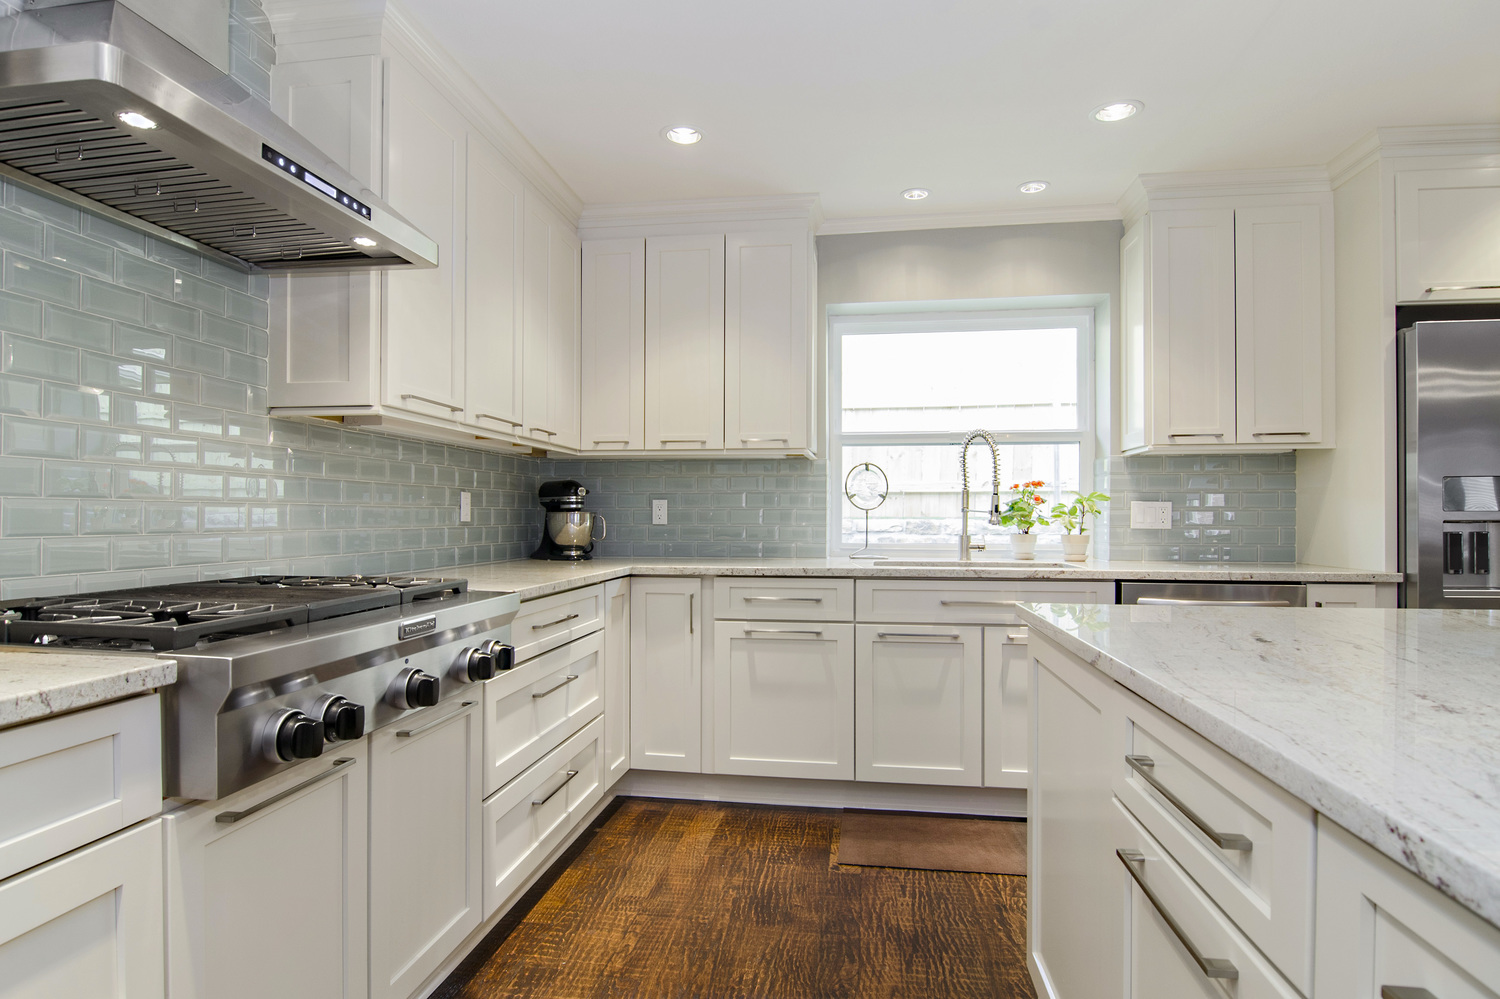 River white granite white cabinets backsplash ideas Kitchen backsplash ideas